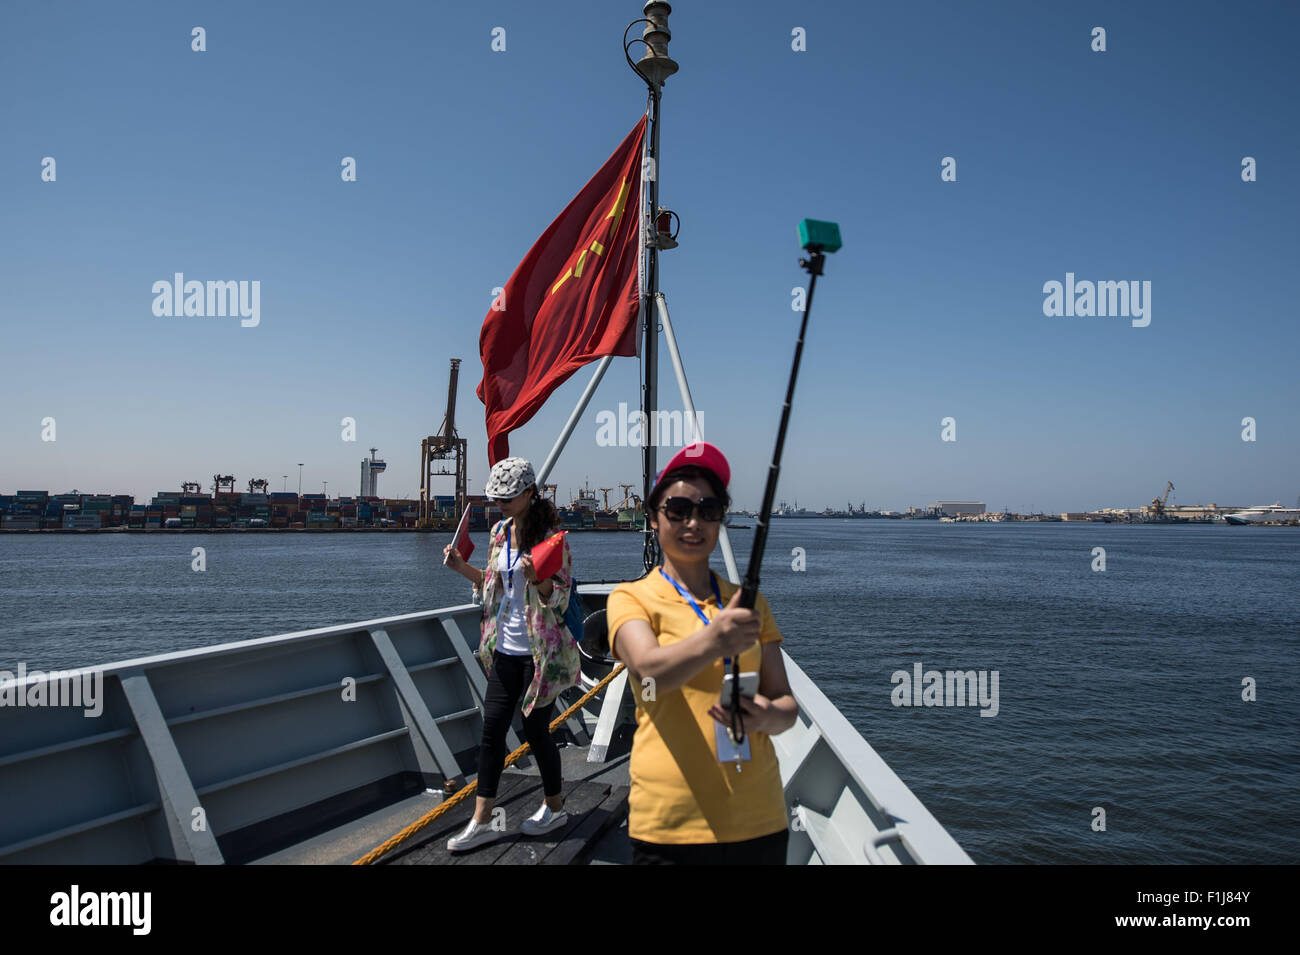 Alexandria, Egypt 2nd Sep, 2015 Chinese Tourists Take Photos On The Deck  Of 052c Missile Equipped Destroyer Ji Nan At The Port Of Alexandria,